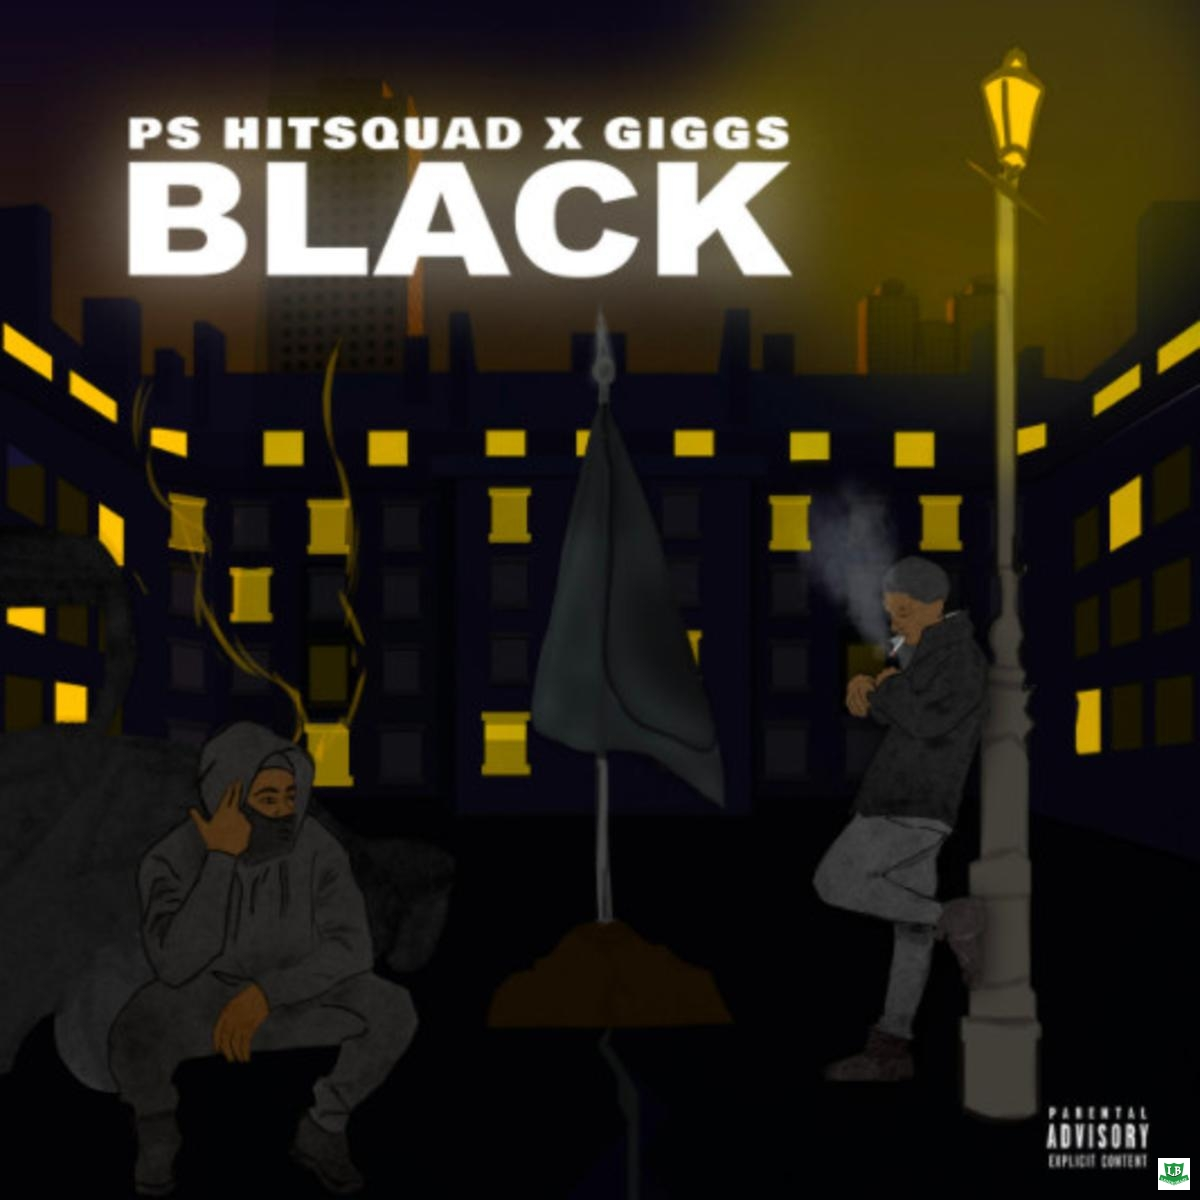 PS Hitsquad › Black Ft. Giggs